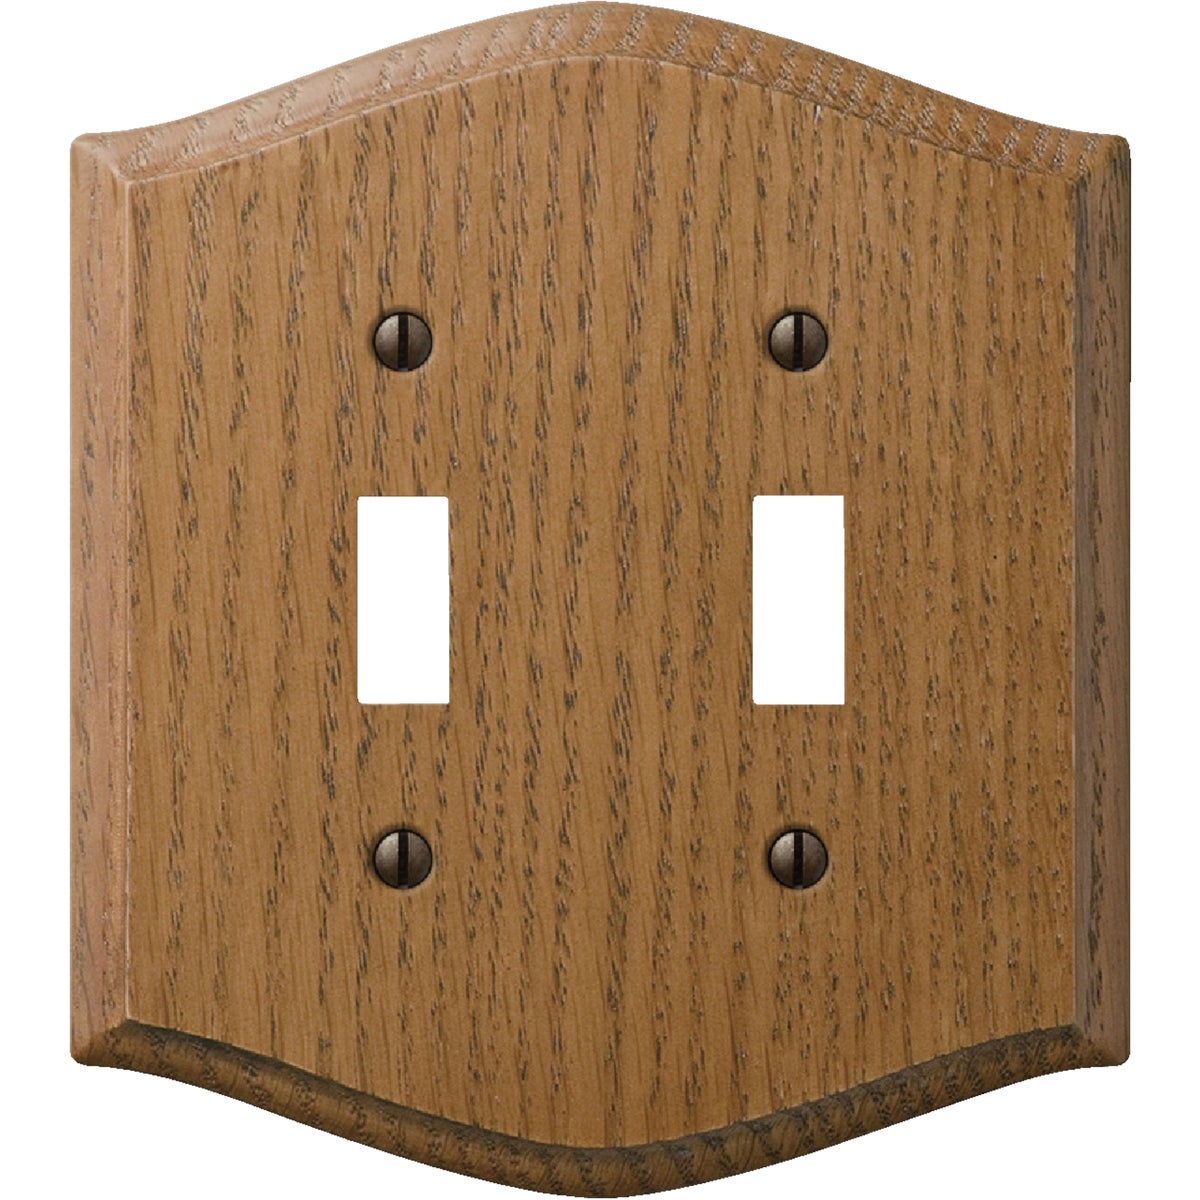 RED OAK 2-TOG WALL PLATE - 702 by Jackson Deerfield Mf